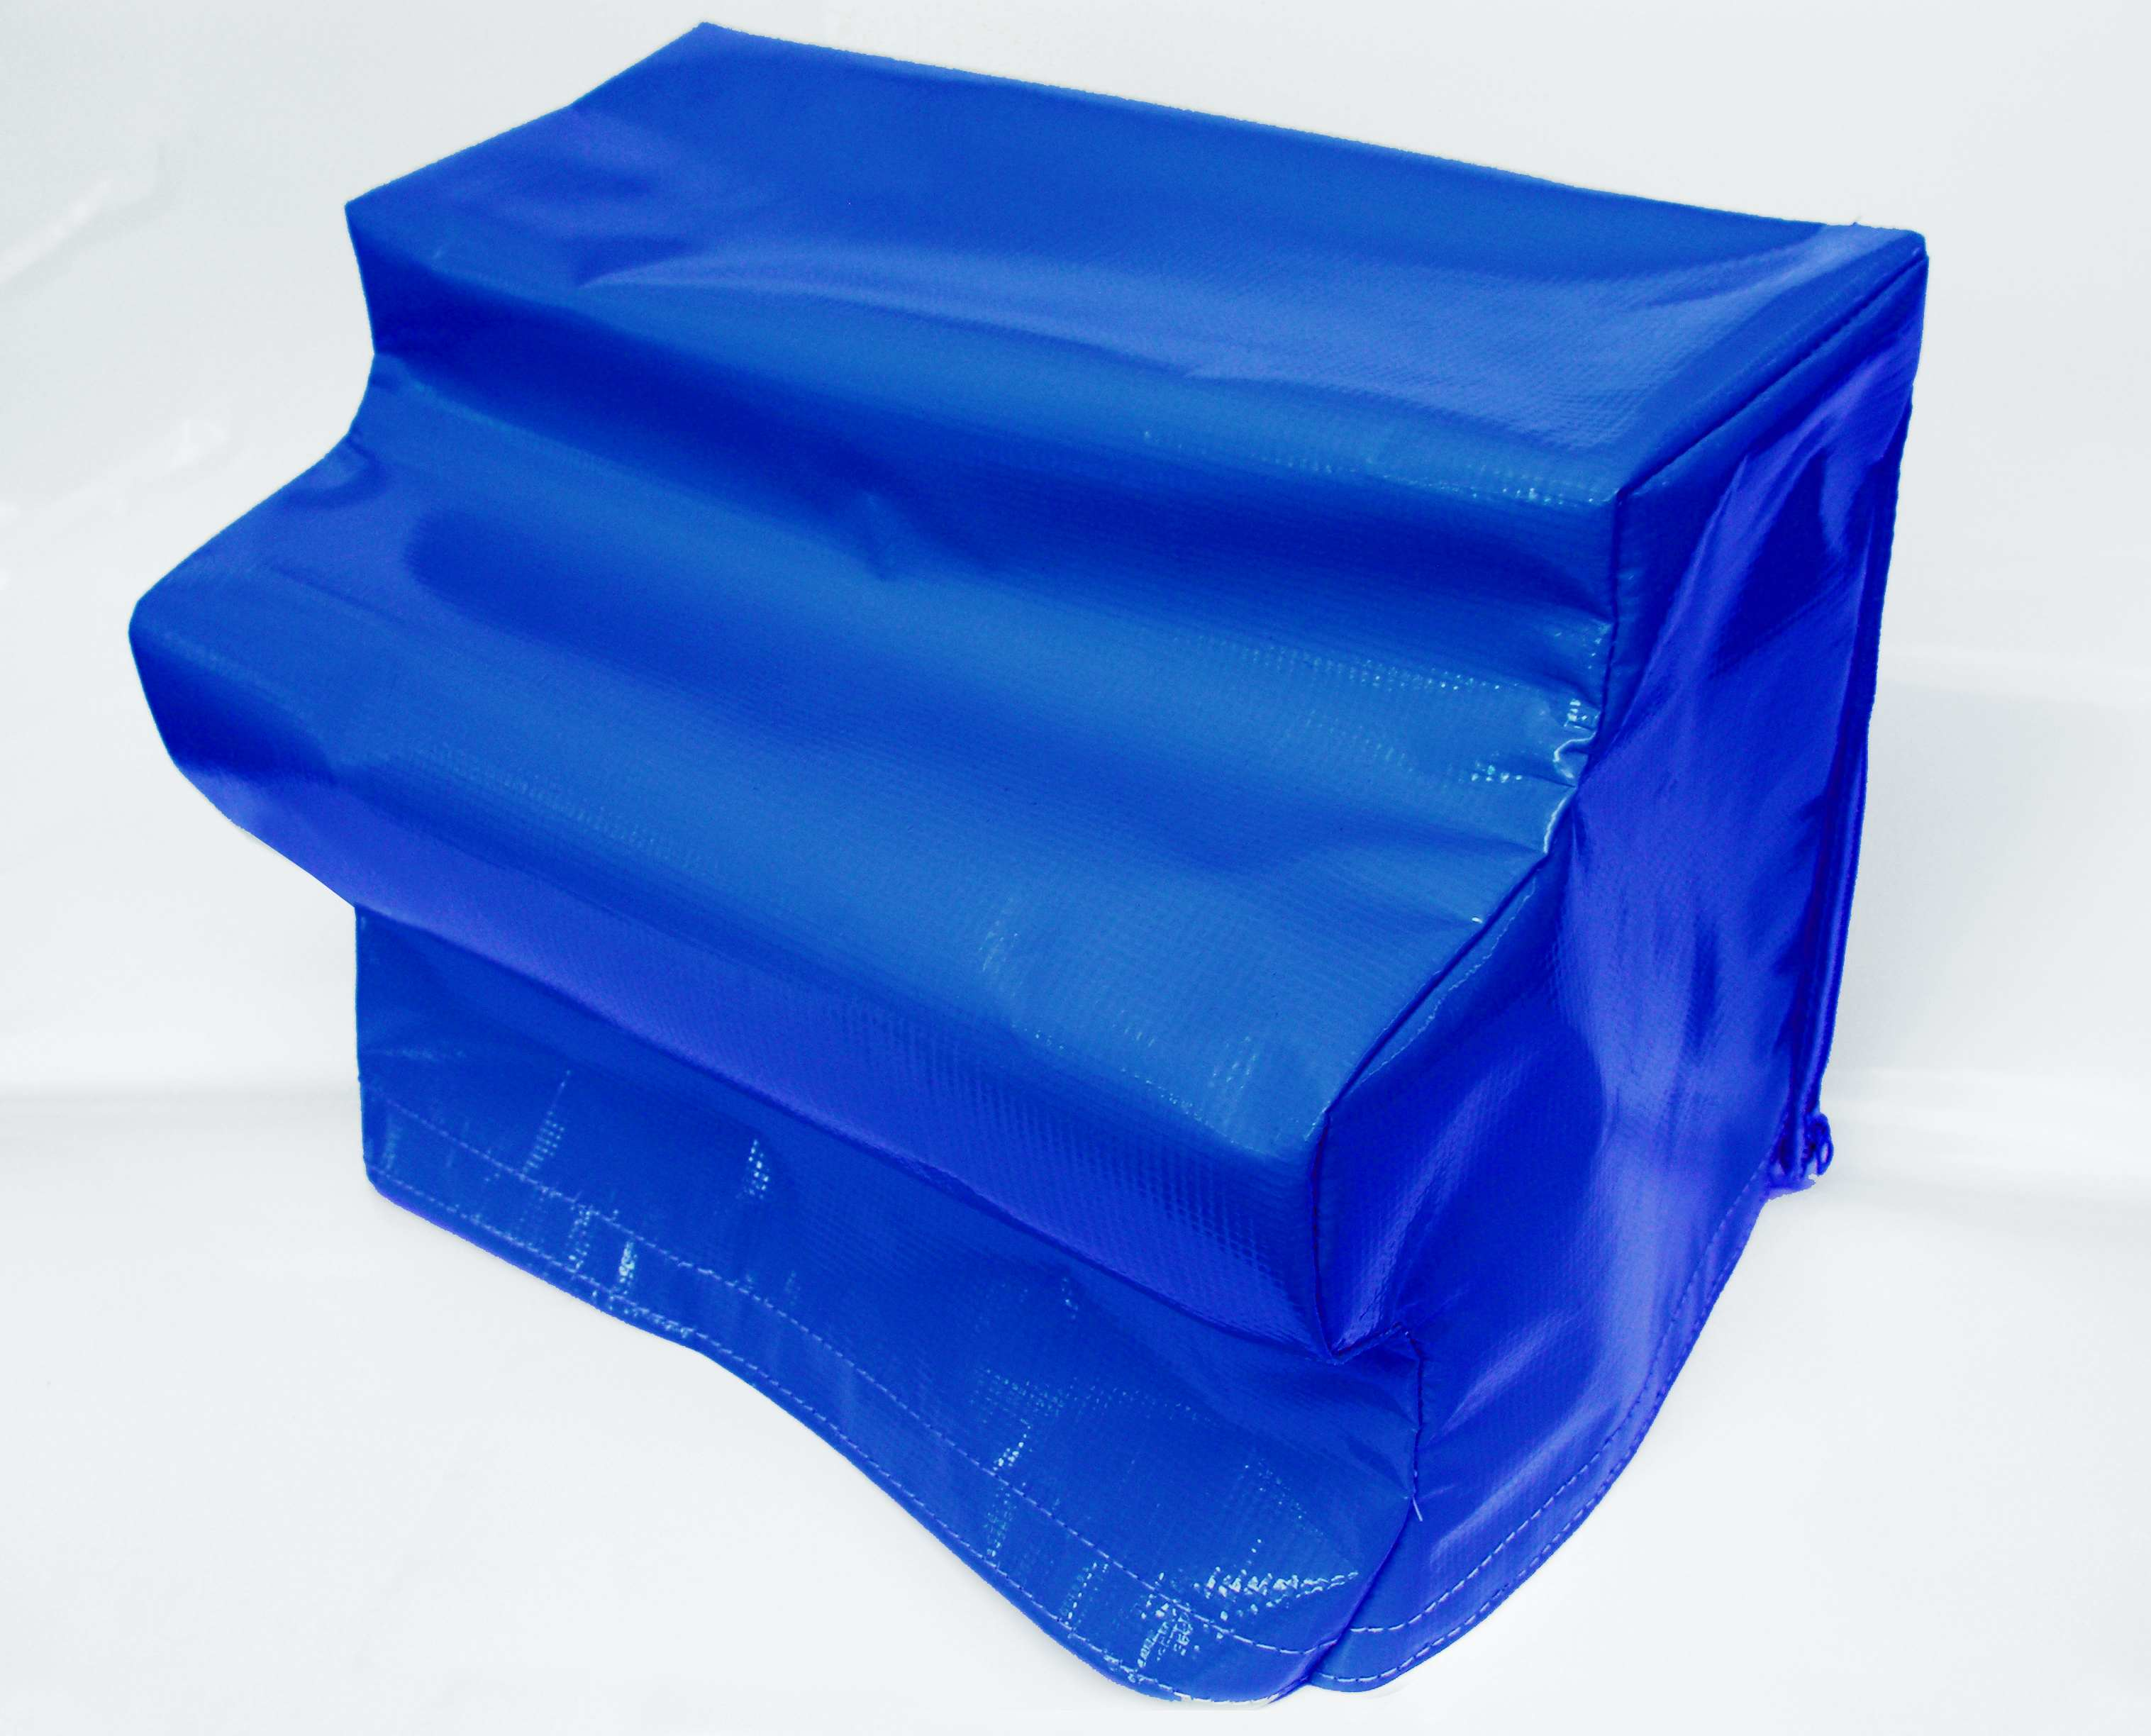 "VINYL COATED NYLON EQUIPMENT COVERS 24"" x 24"" x 36"""